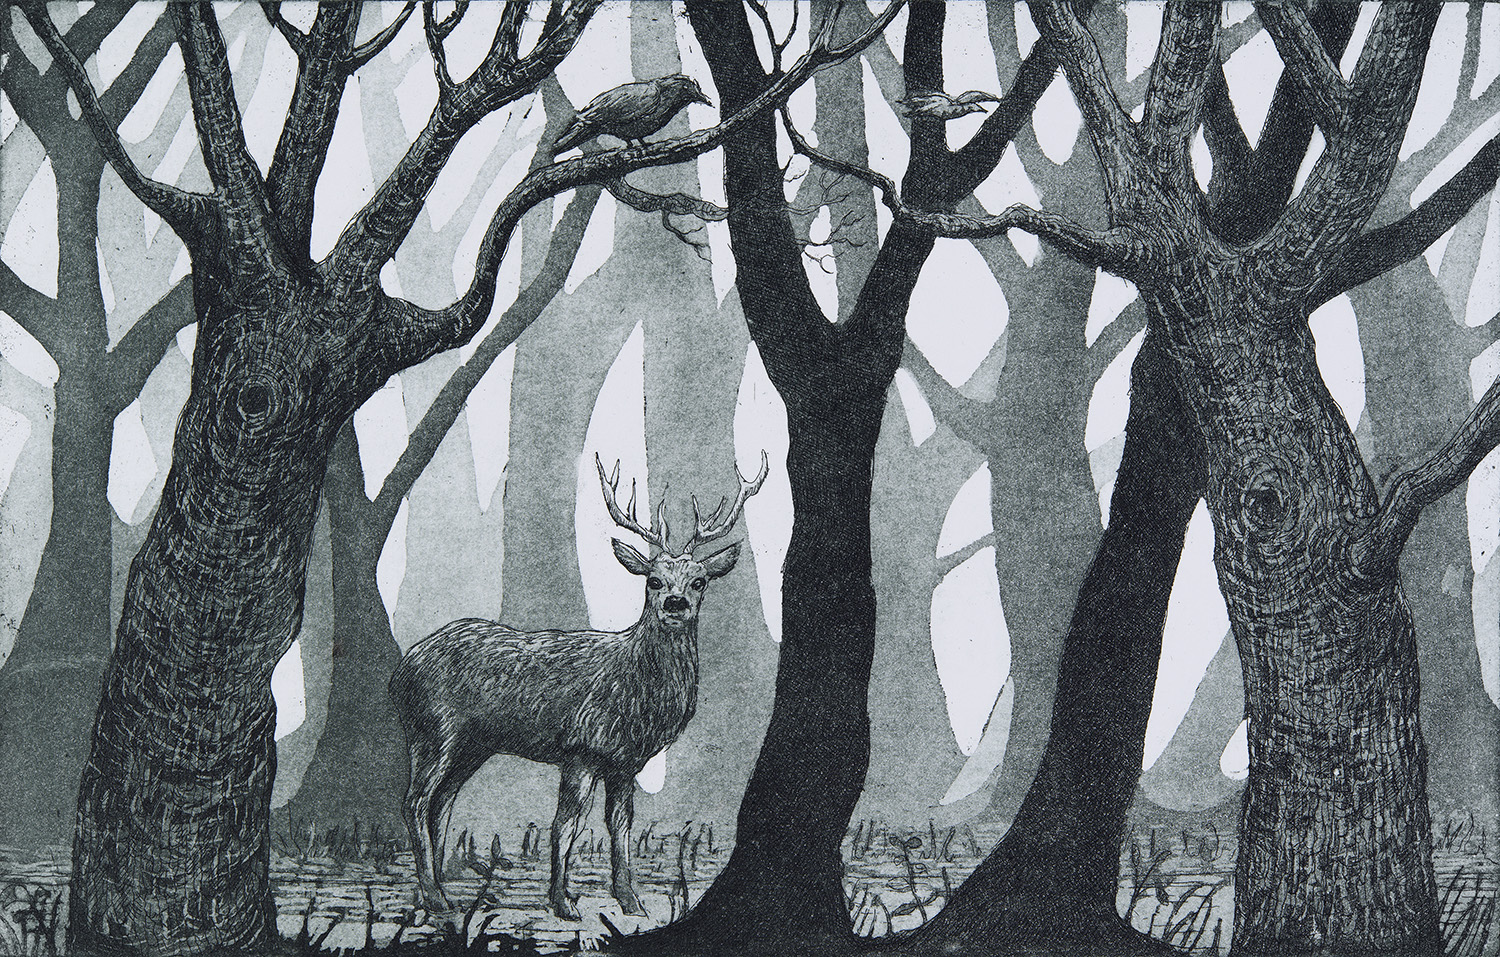 Forest Glen  Etching and aquatint  24 x 34cm  £150 unframed